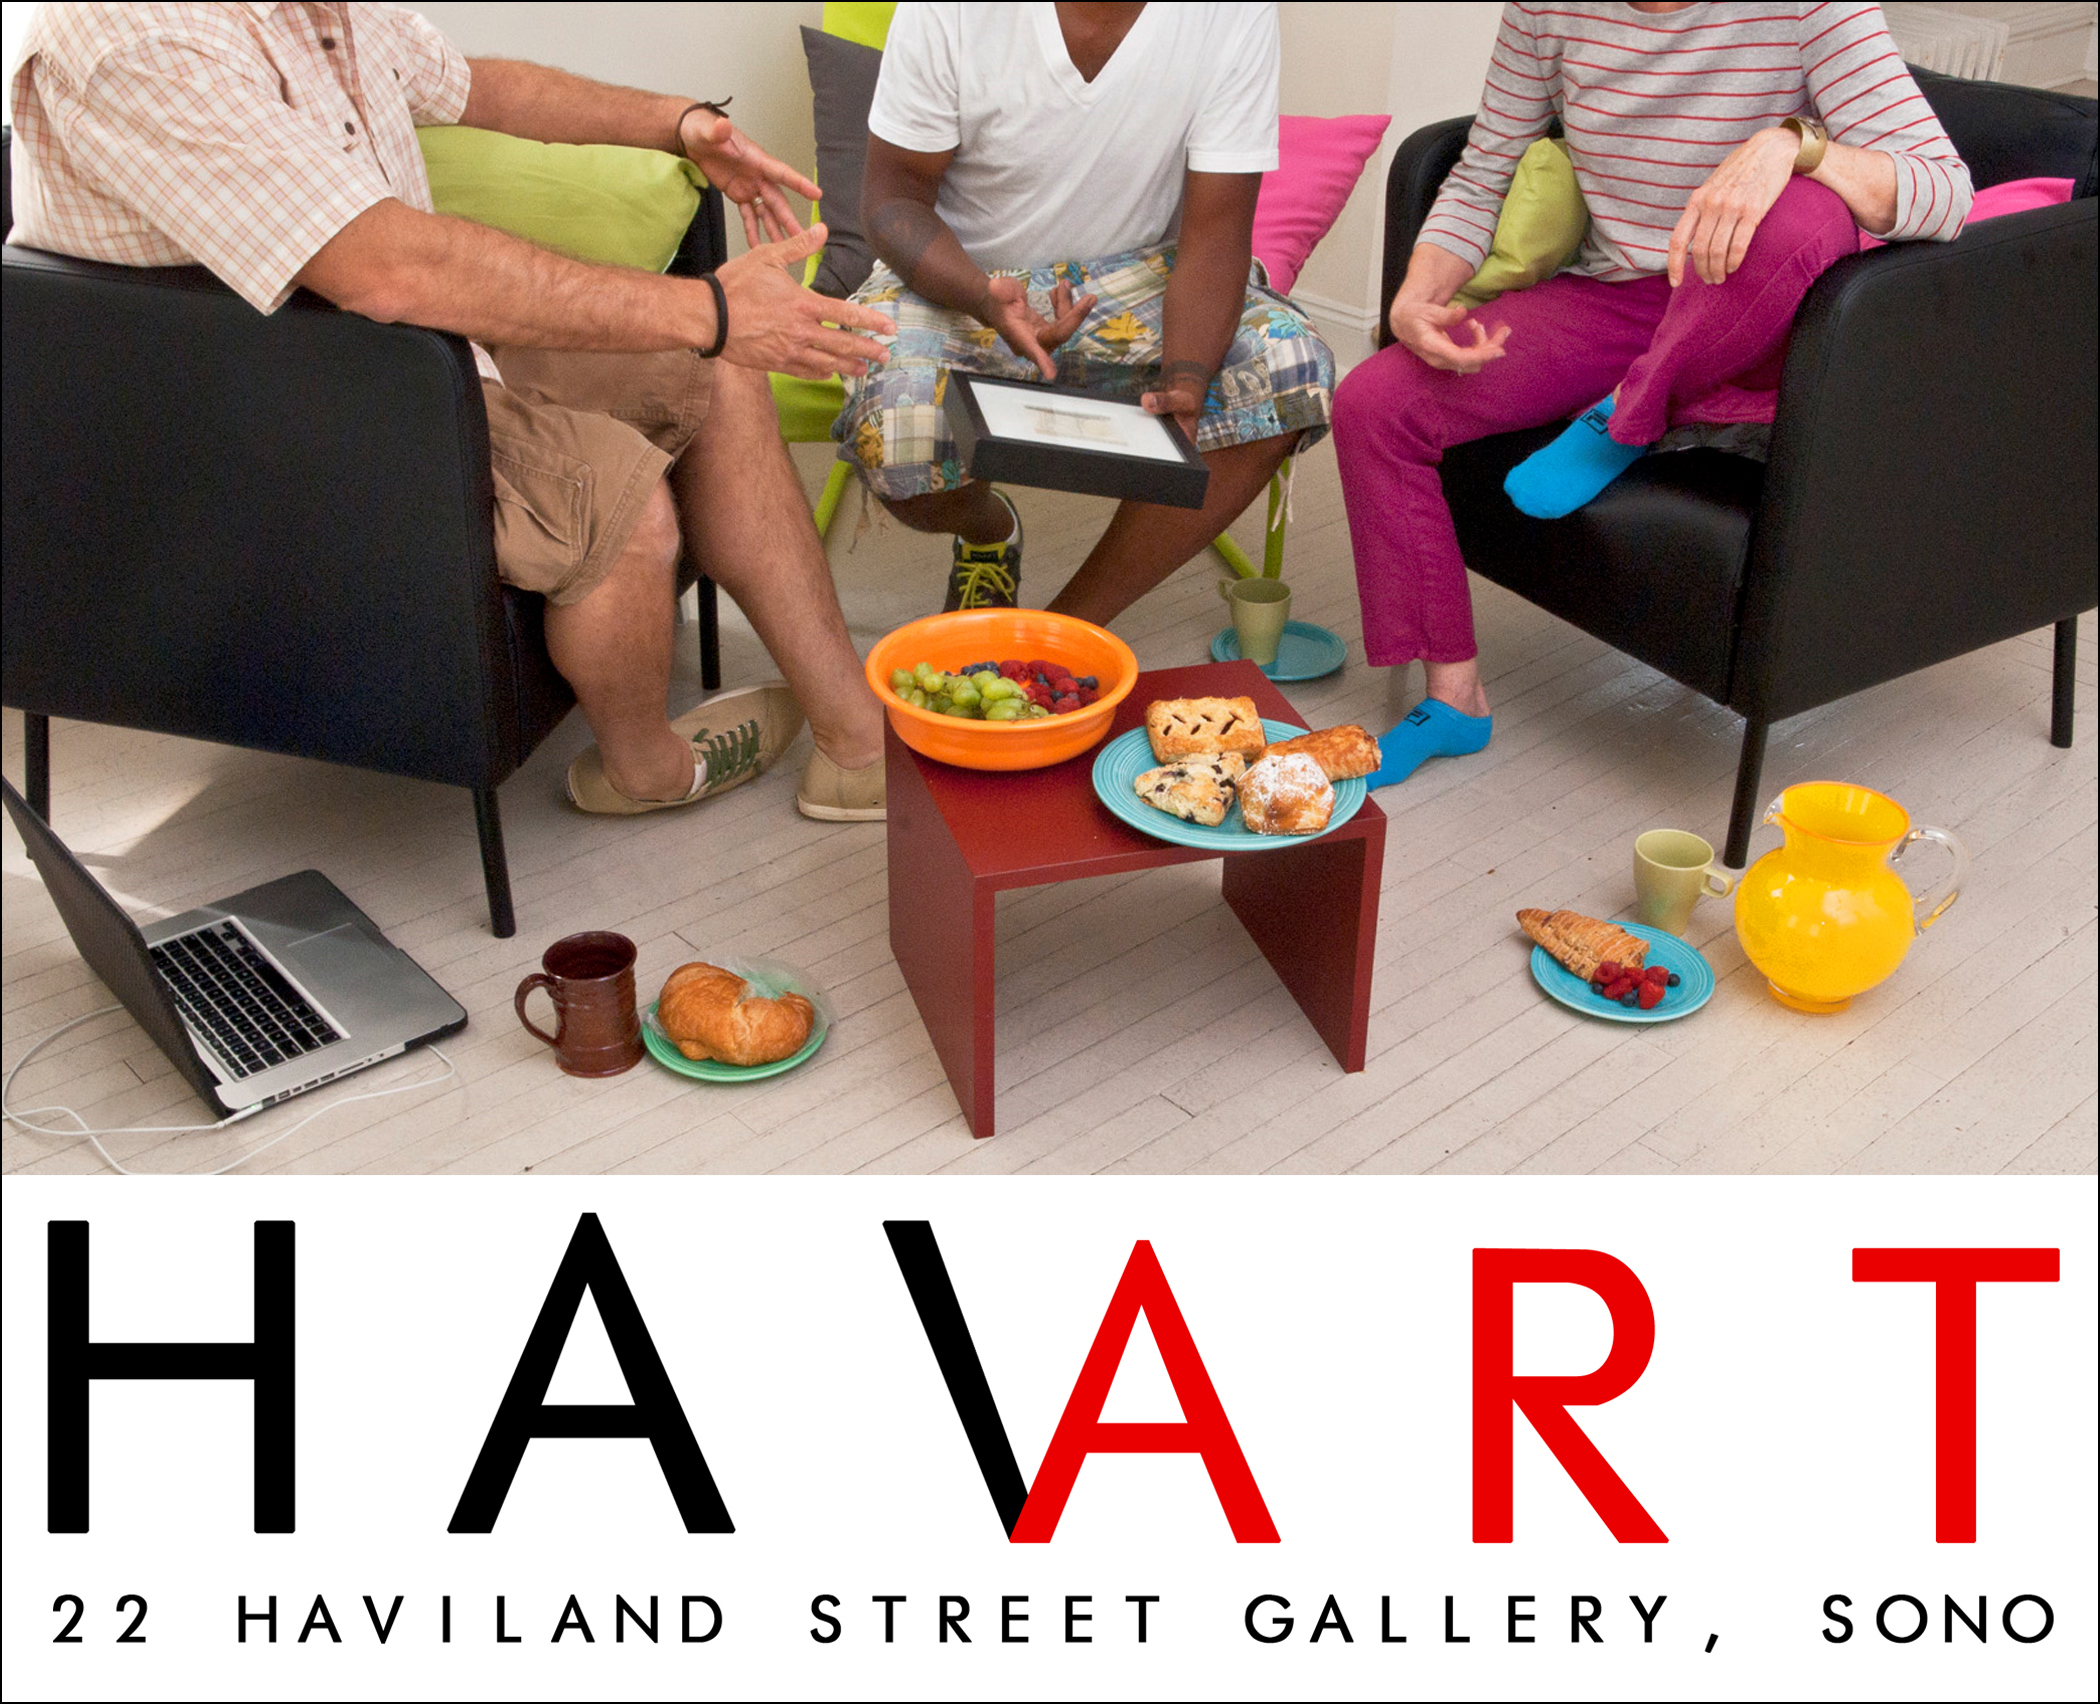 """22 Haviland Street Gallery  is proud to present """"HAVART"""", A diverse art exhibit featuring 6 Regional Artists. The opening receptions coincide with the SONO Arts Celebration weekend and is the kickoff to our 12th August in SONO.    Opening Brunch, Saturday, August 16th 10am – 1pm   Evening Reception, Saturday August 16th 5  pm – 7pm  Closing Reception, Wednesday, September 10th 5pm – 8pm  Featured Artists;   Vincent Calenzo ...Painter of Comedic Situations   Jahmane Artz ...Graffikollage Artist   Duvian Montoya ...LifeStyle Narratives   day moore ...Minimalist Landscape Painter   Constance Old ...Fiber Wall Art Pieces  Becca Swartz...Mandala Artist  Gallery Hours: Thursday – Sunday 3pm – 6pm and by Appointment"""